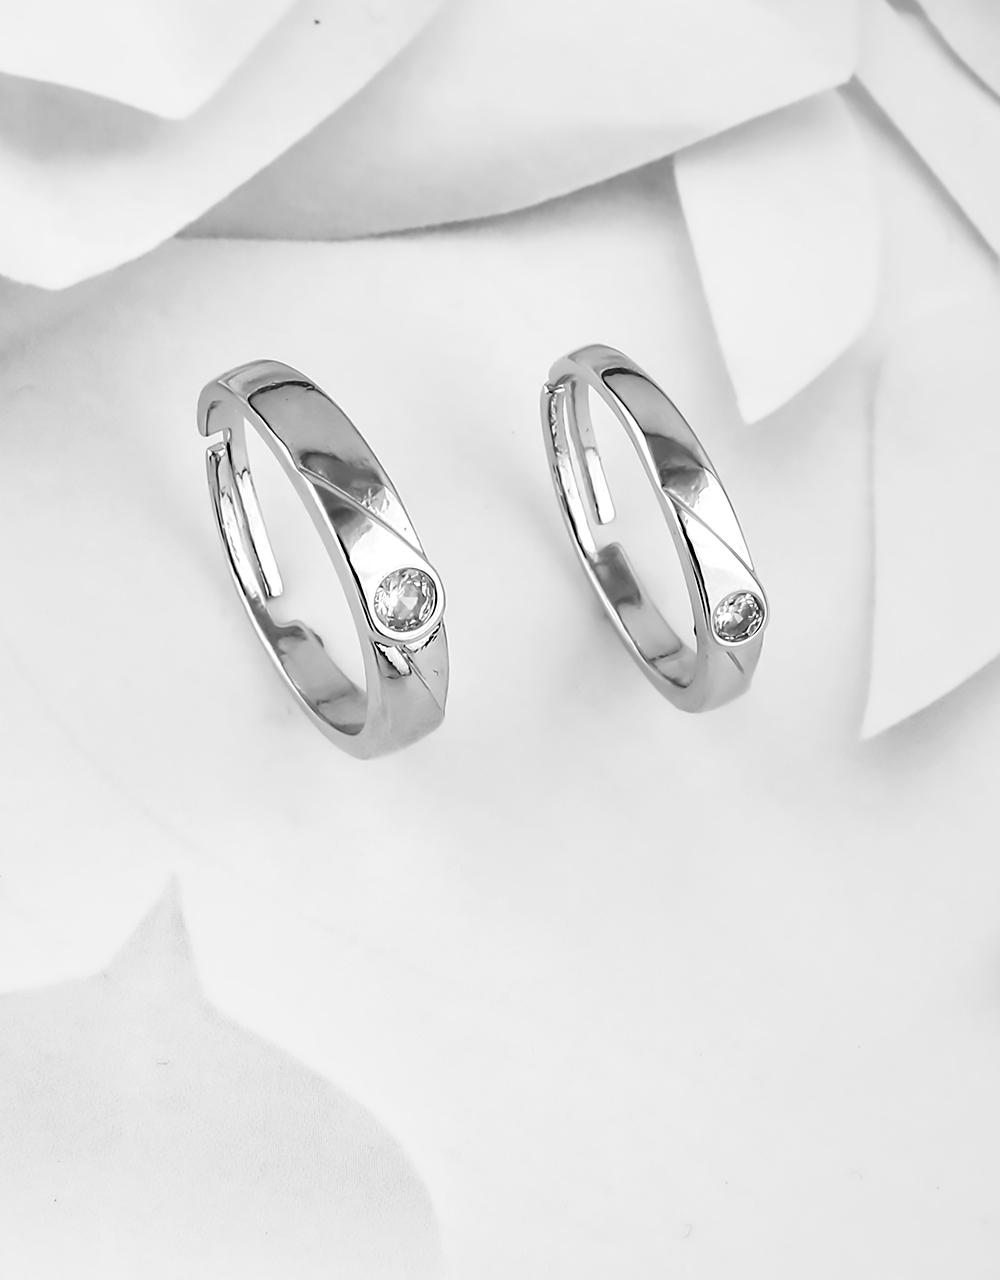 Silver Finish Designer Stainless Steel Couple Rings